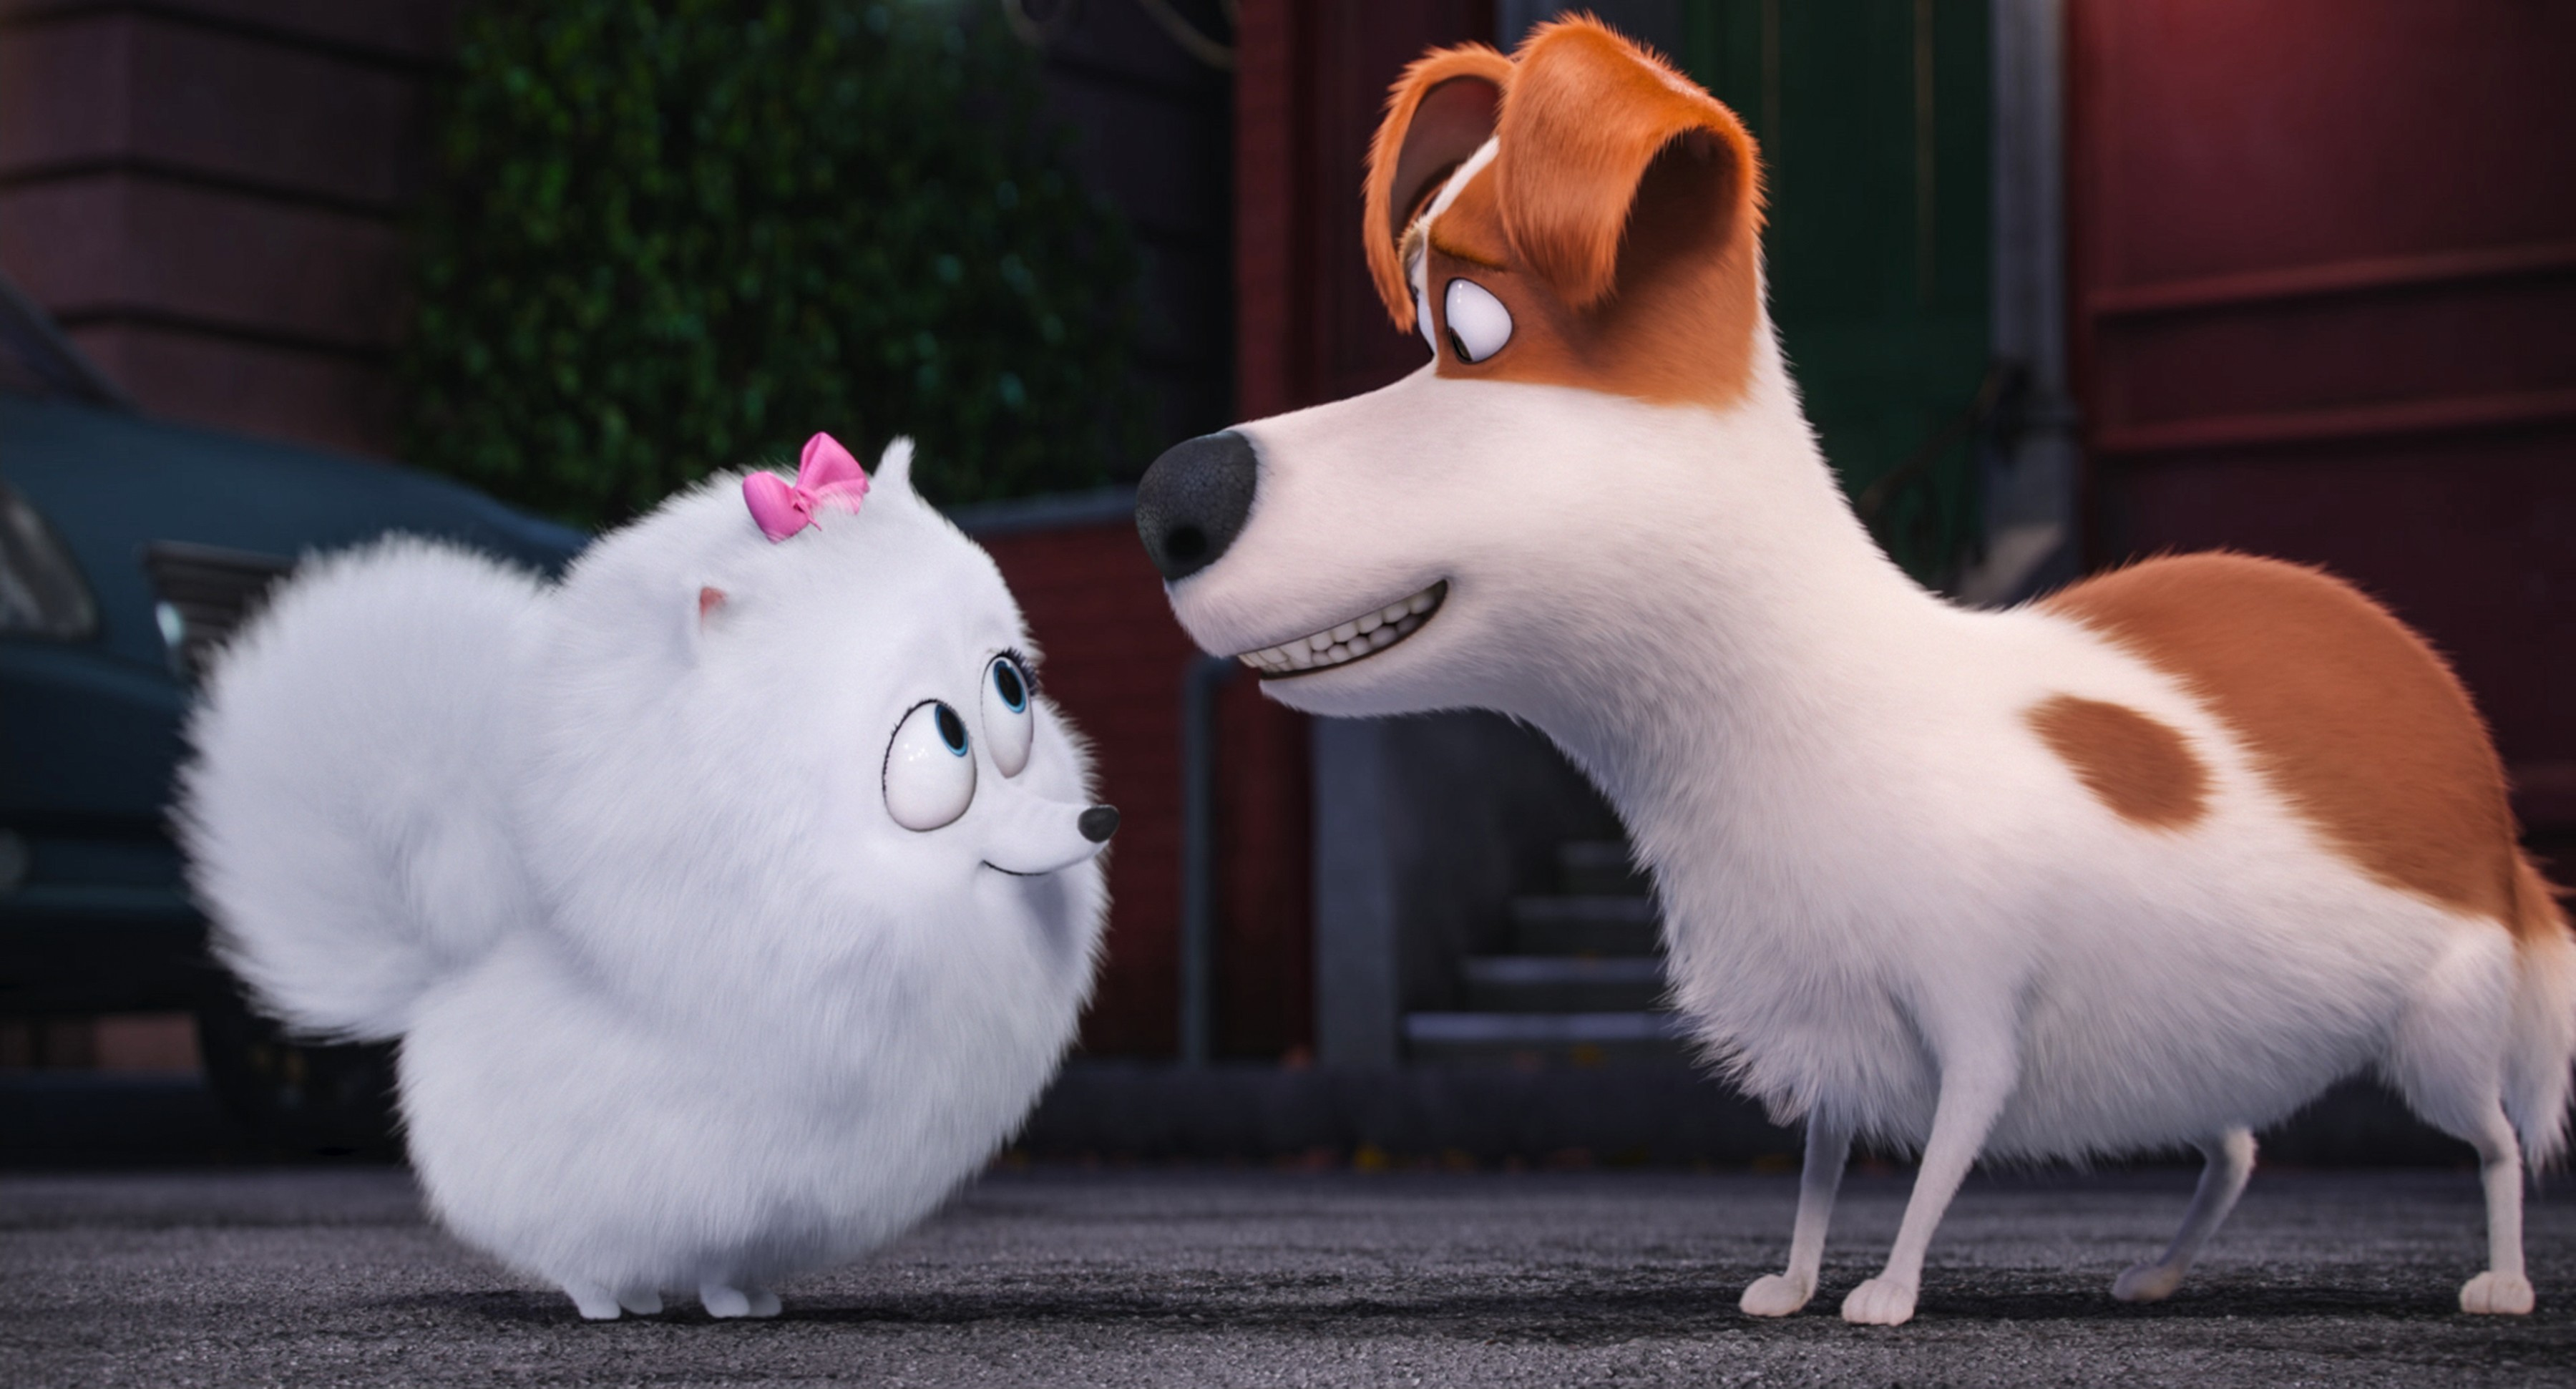 The Secret Life Of Pets Wallpaper: Wallpaper The Secret Life Of Pets, Dog, Best Animation